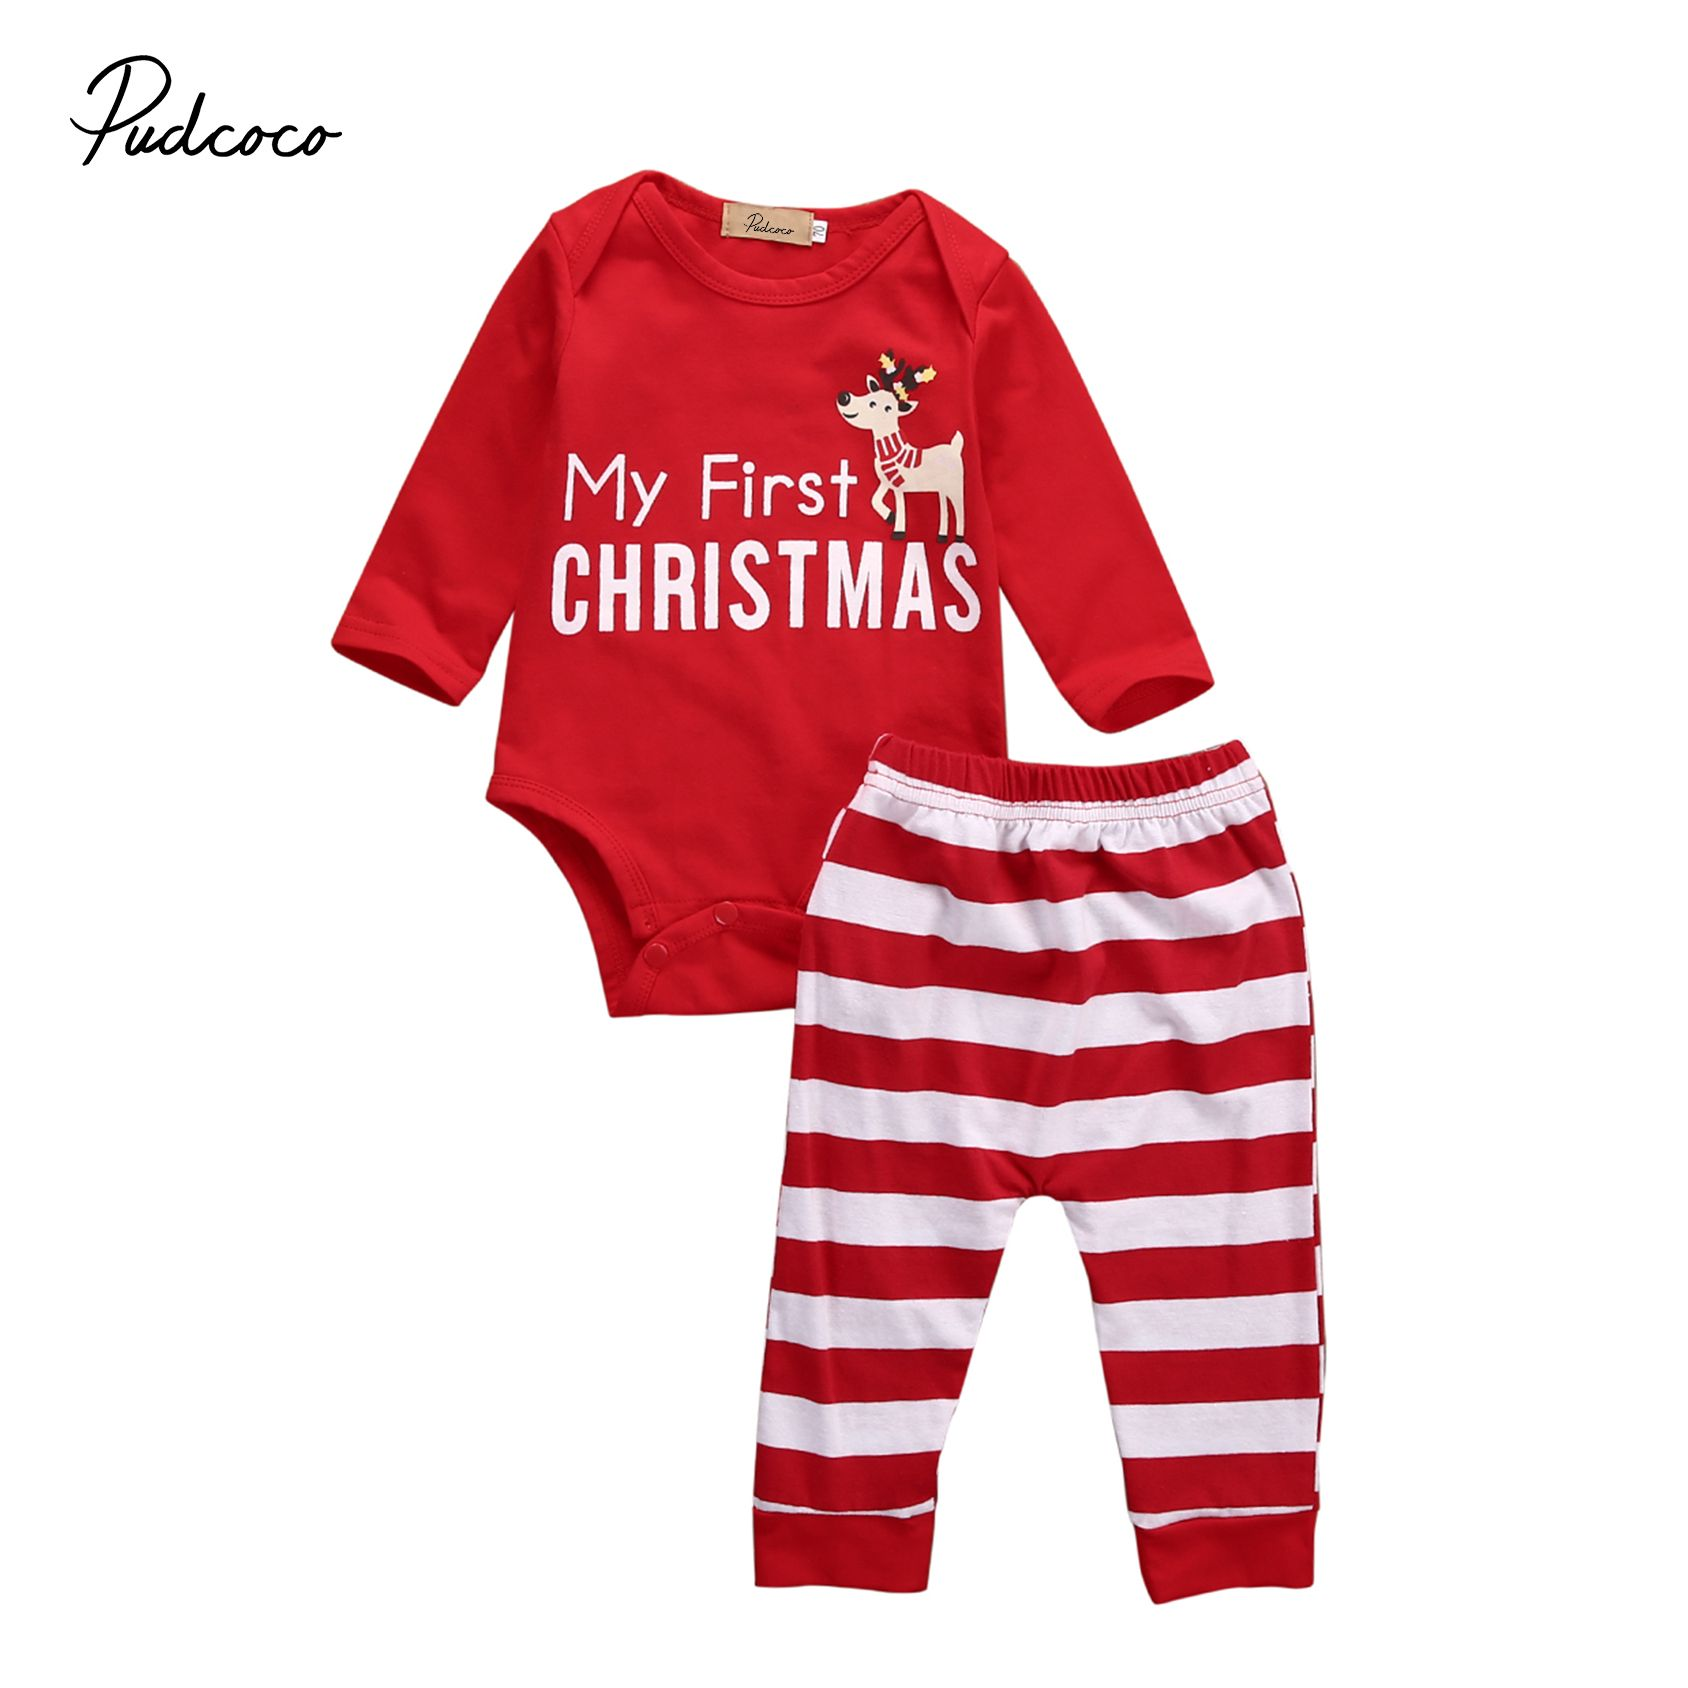 My 1st Christmas Newborn Infant Baby Girl Clothes Outfit Long Sleeve Striped Romper Headband 2Pcs Clothing Set